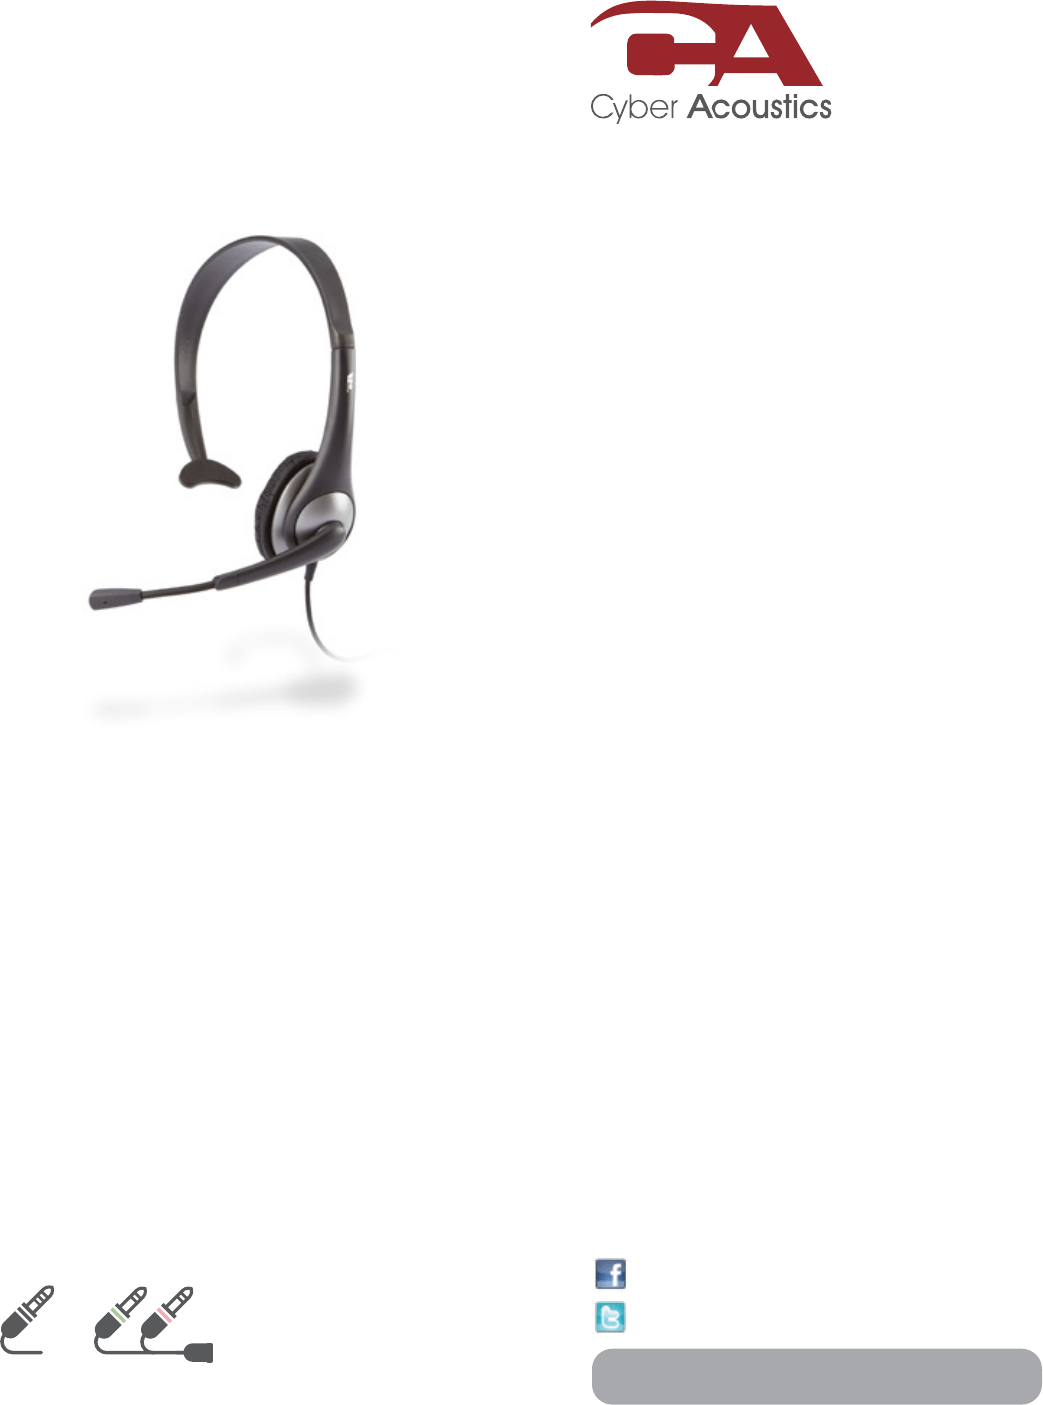 Cyber Acoustics Corded Headset AC-104 User Guide